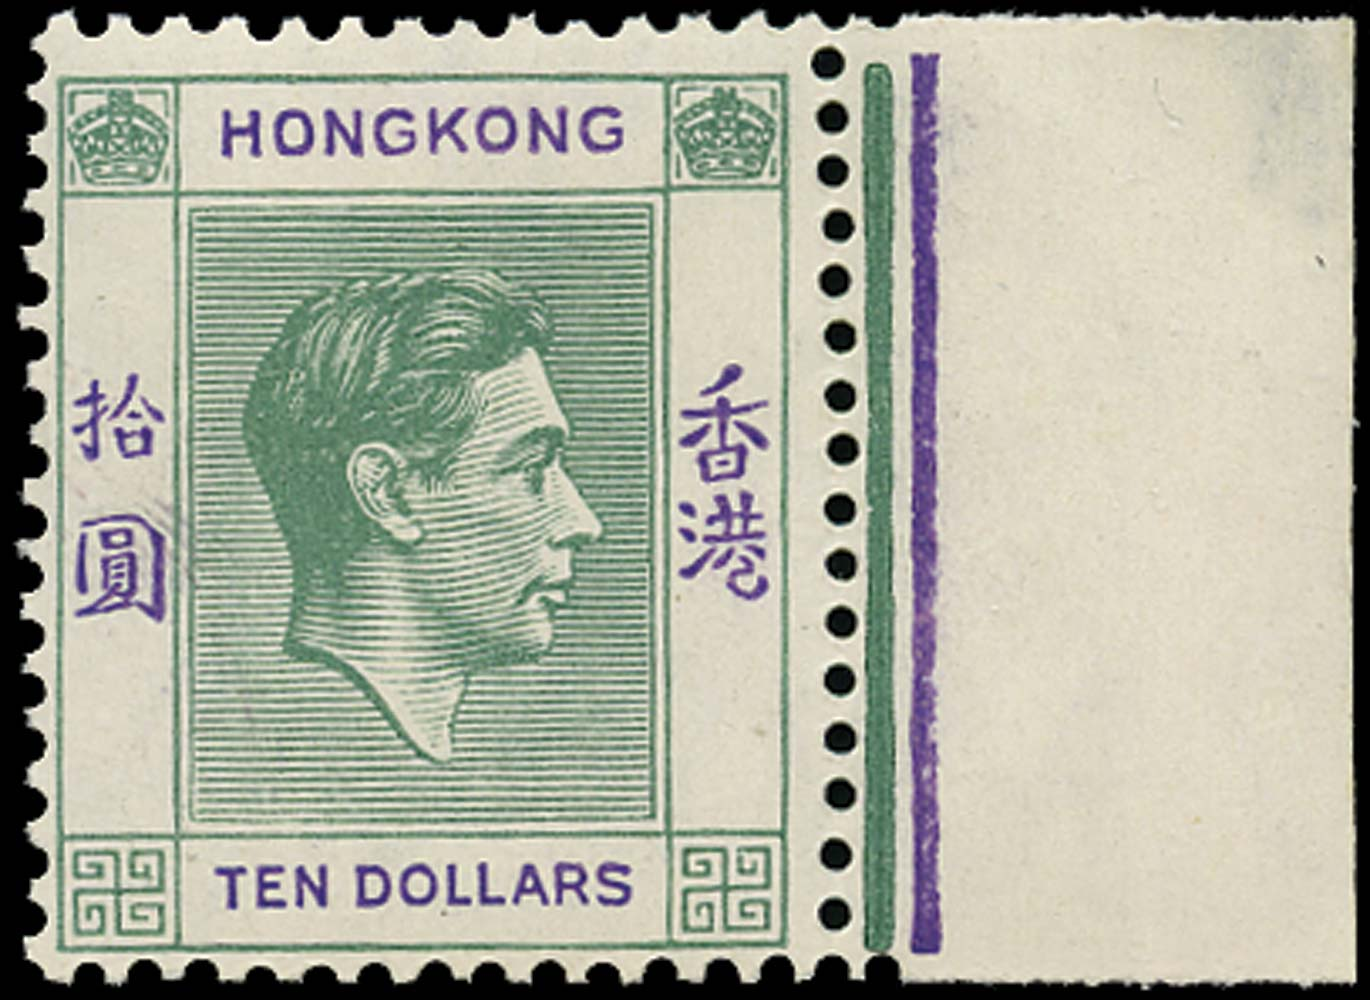 HONG KONG 1938  SG161 Mint $10 green and violet unmounted